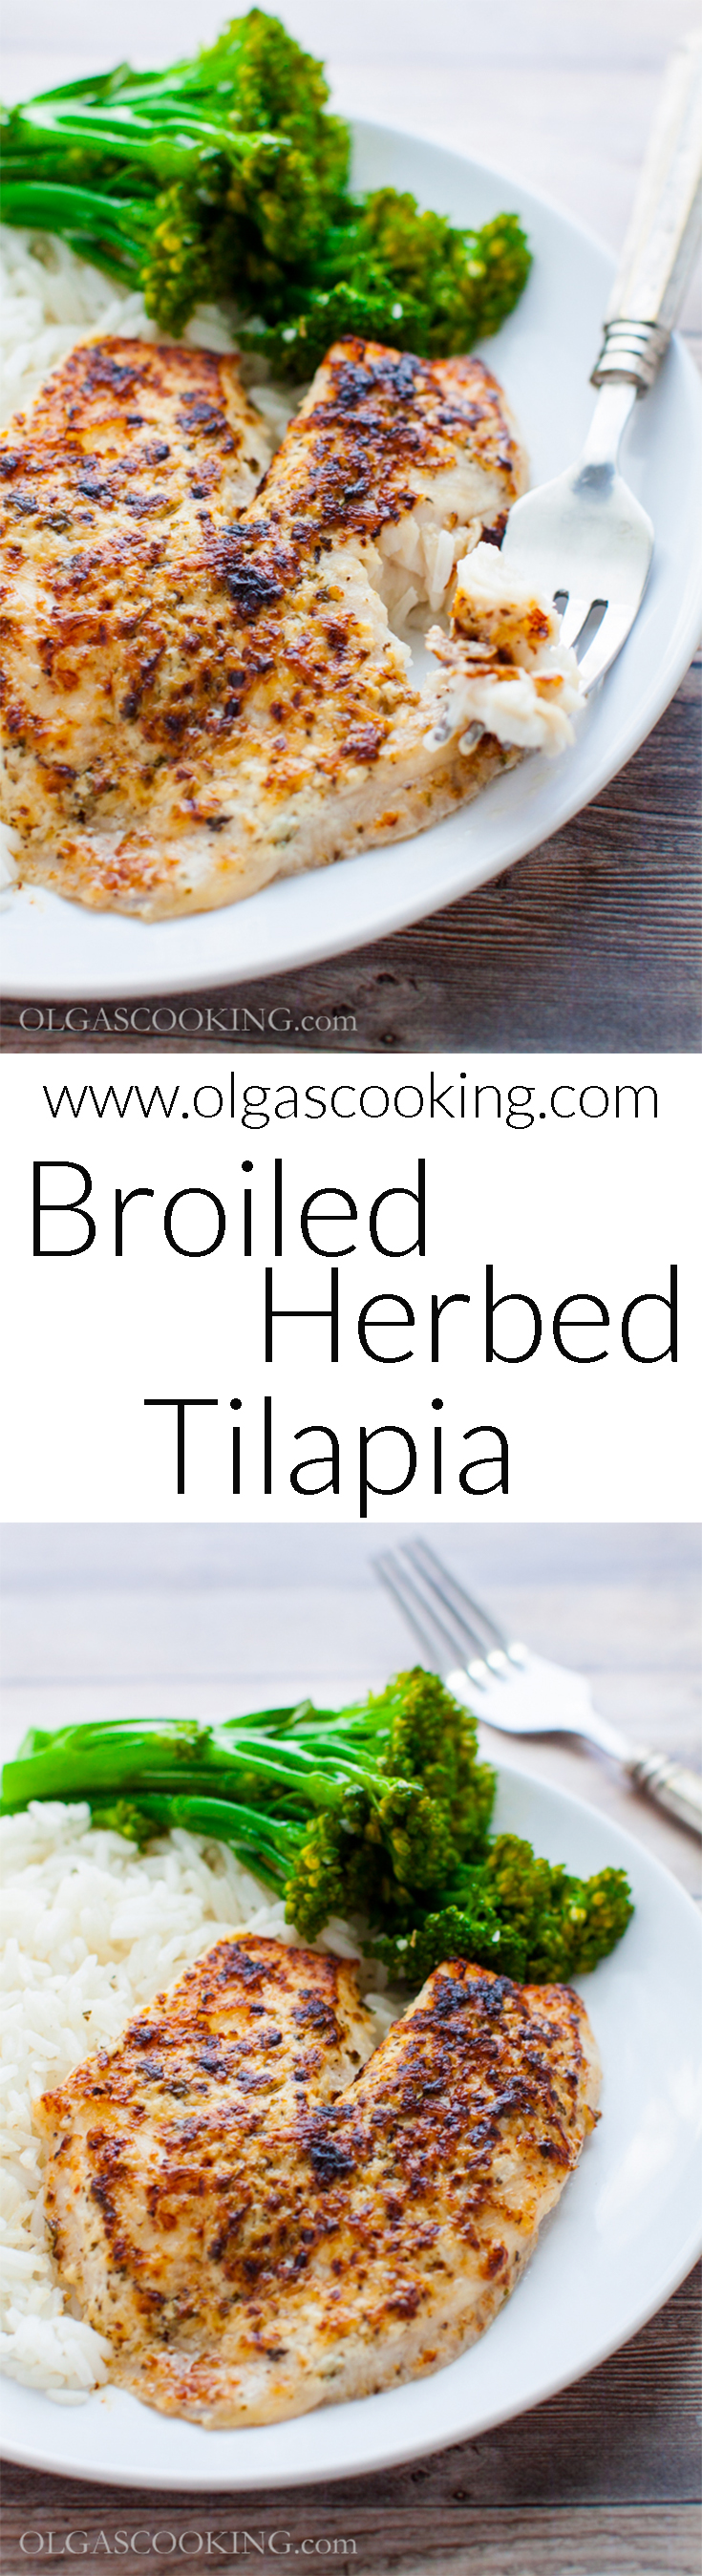 Best ever, easy and delicious! Broiled Herbed Tilapia. Fancy dish made with little effort!